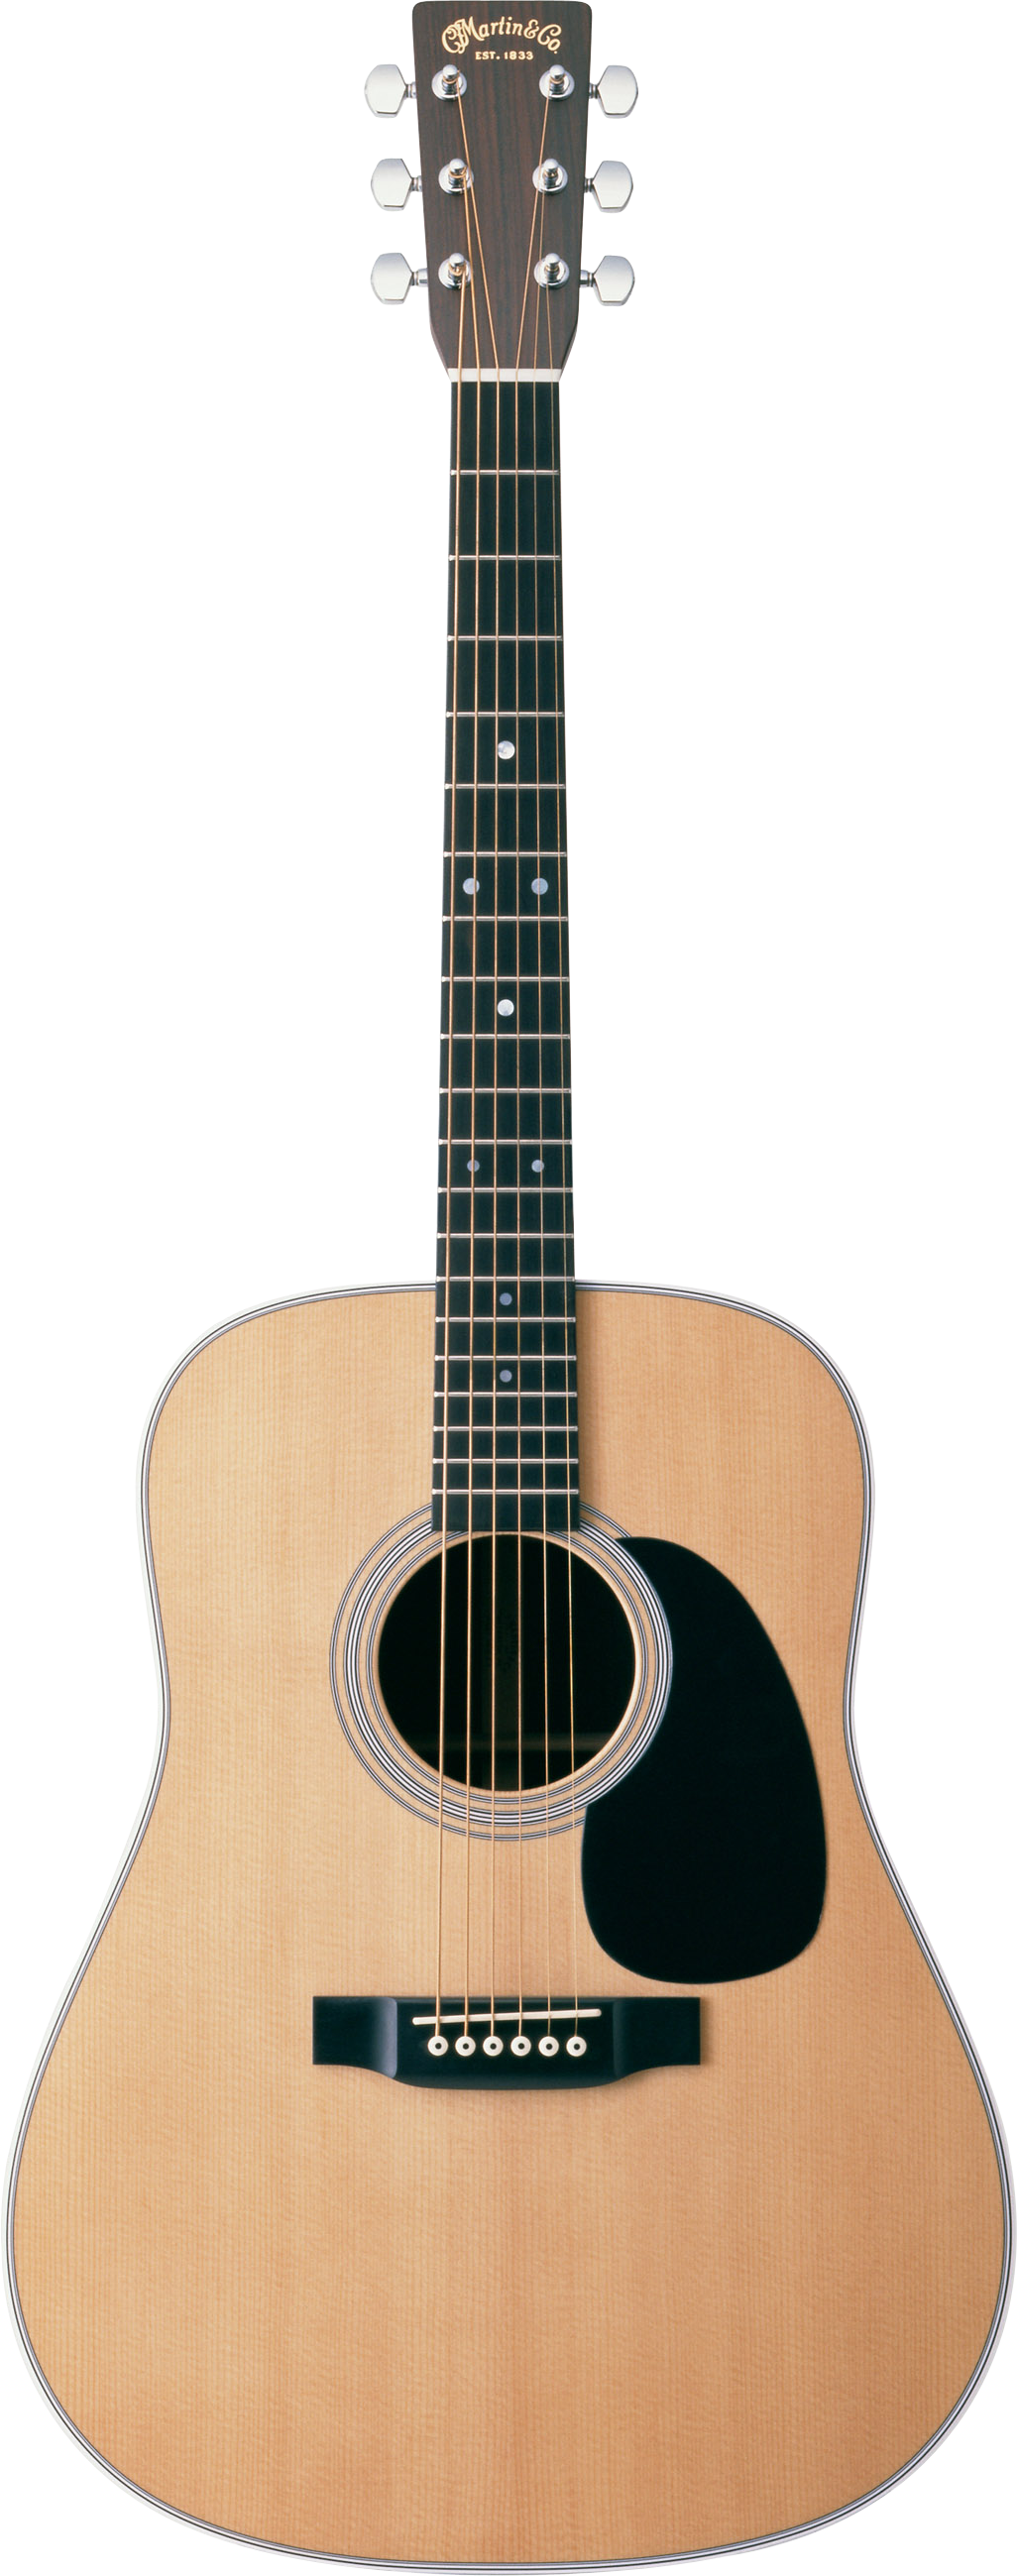 Acoustic guitar png. Images free picture download